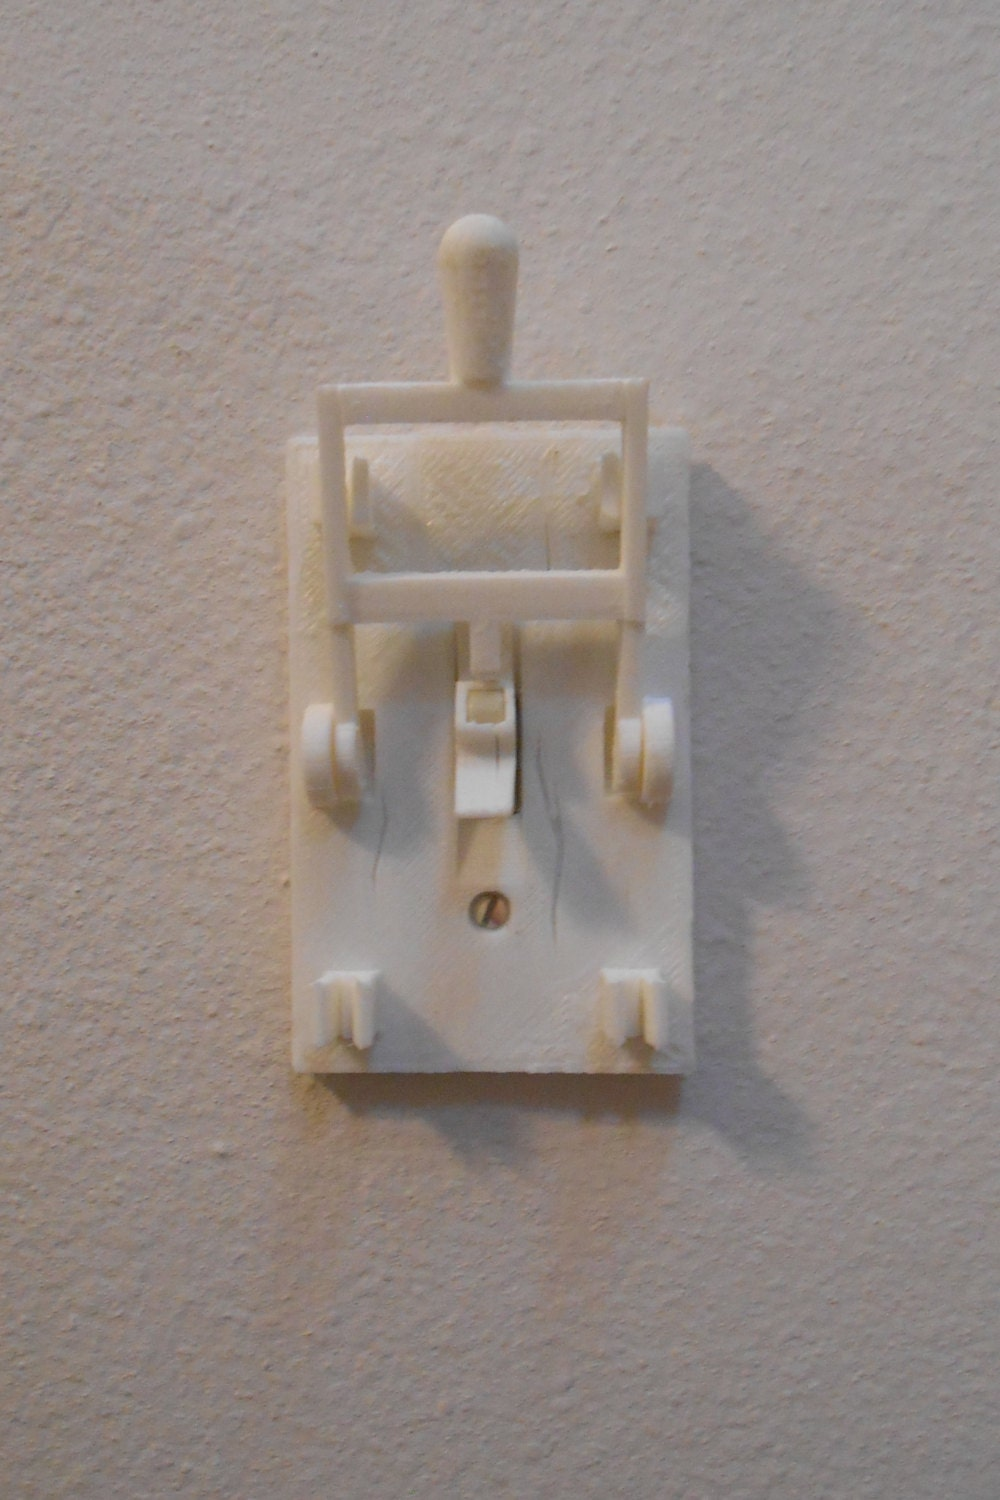 Frankenstein knife light switch 3d printed home decor home for Decor light switch